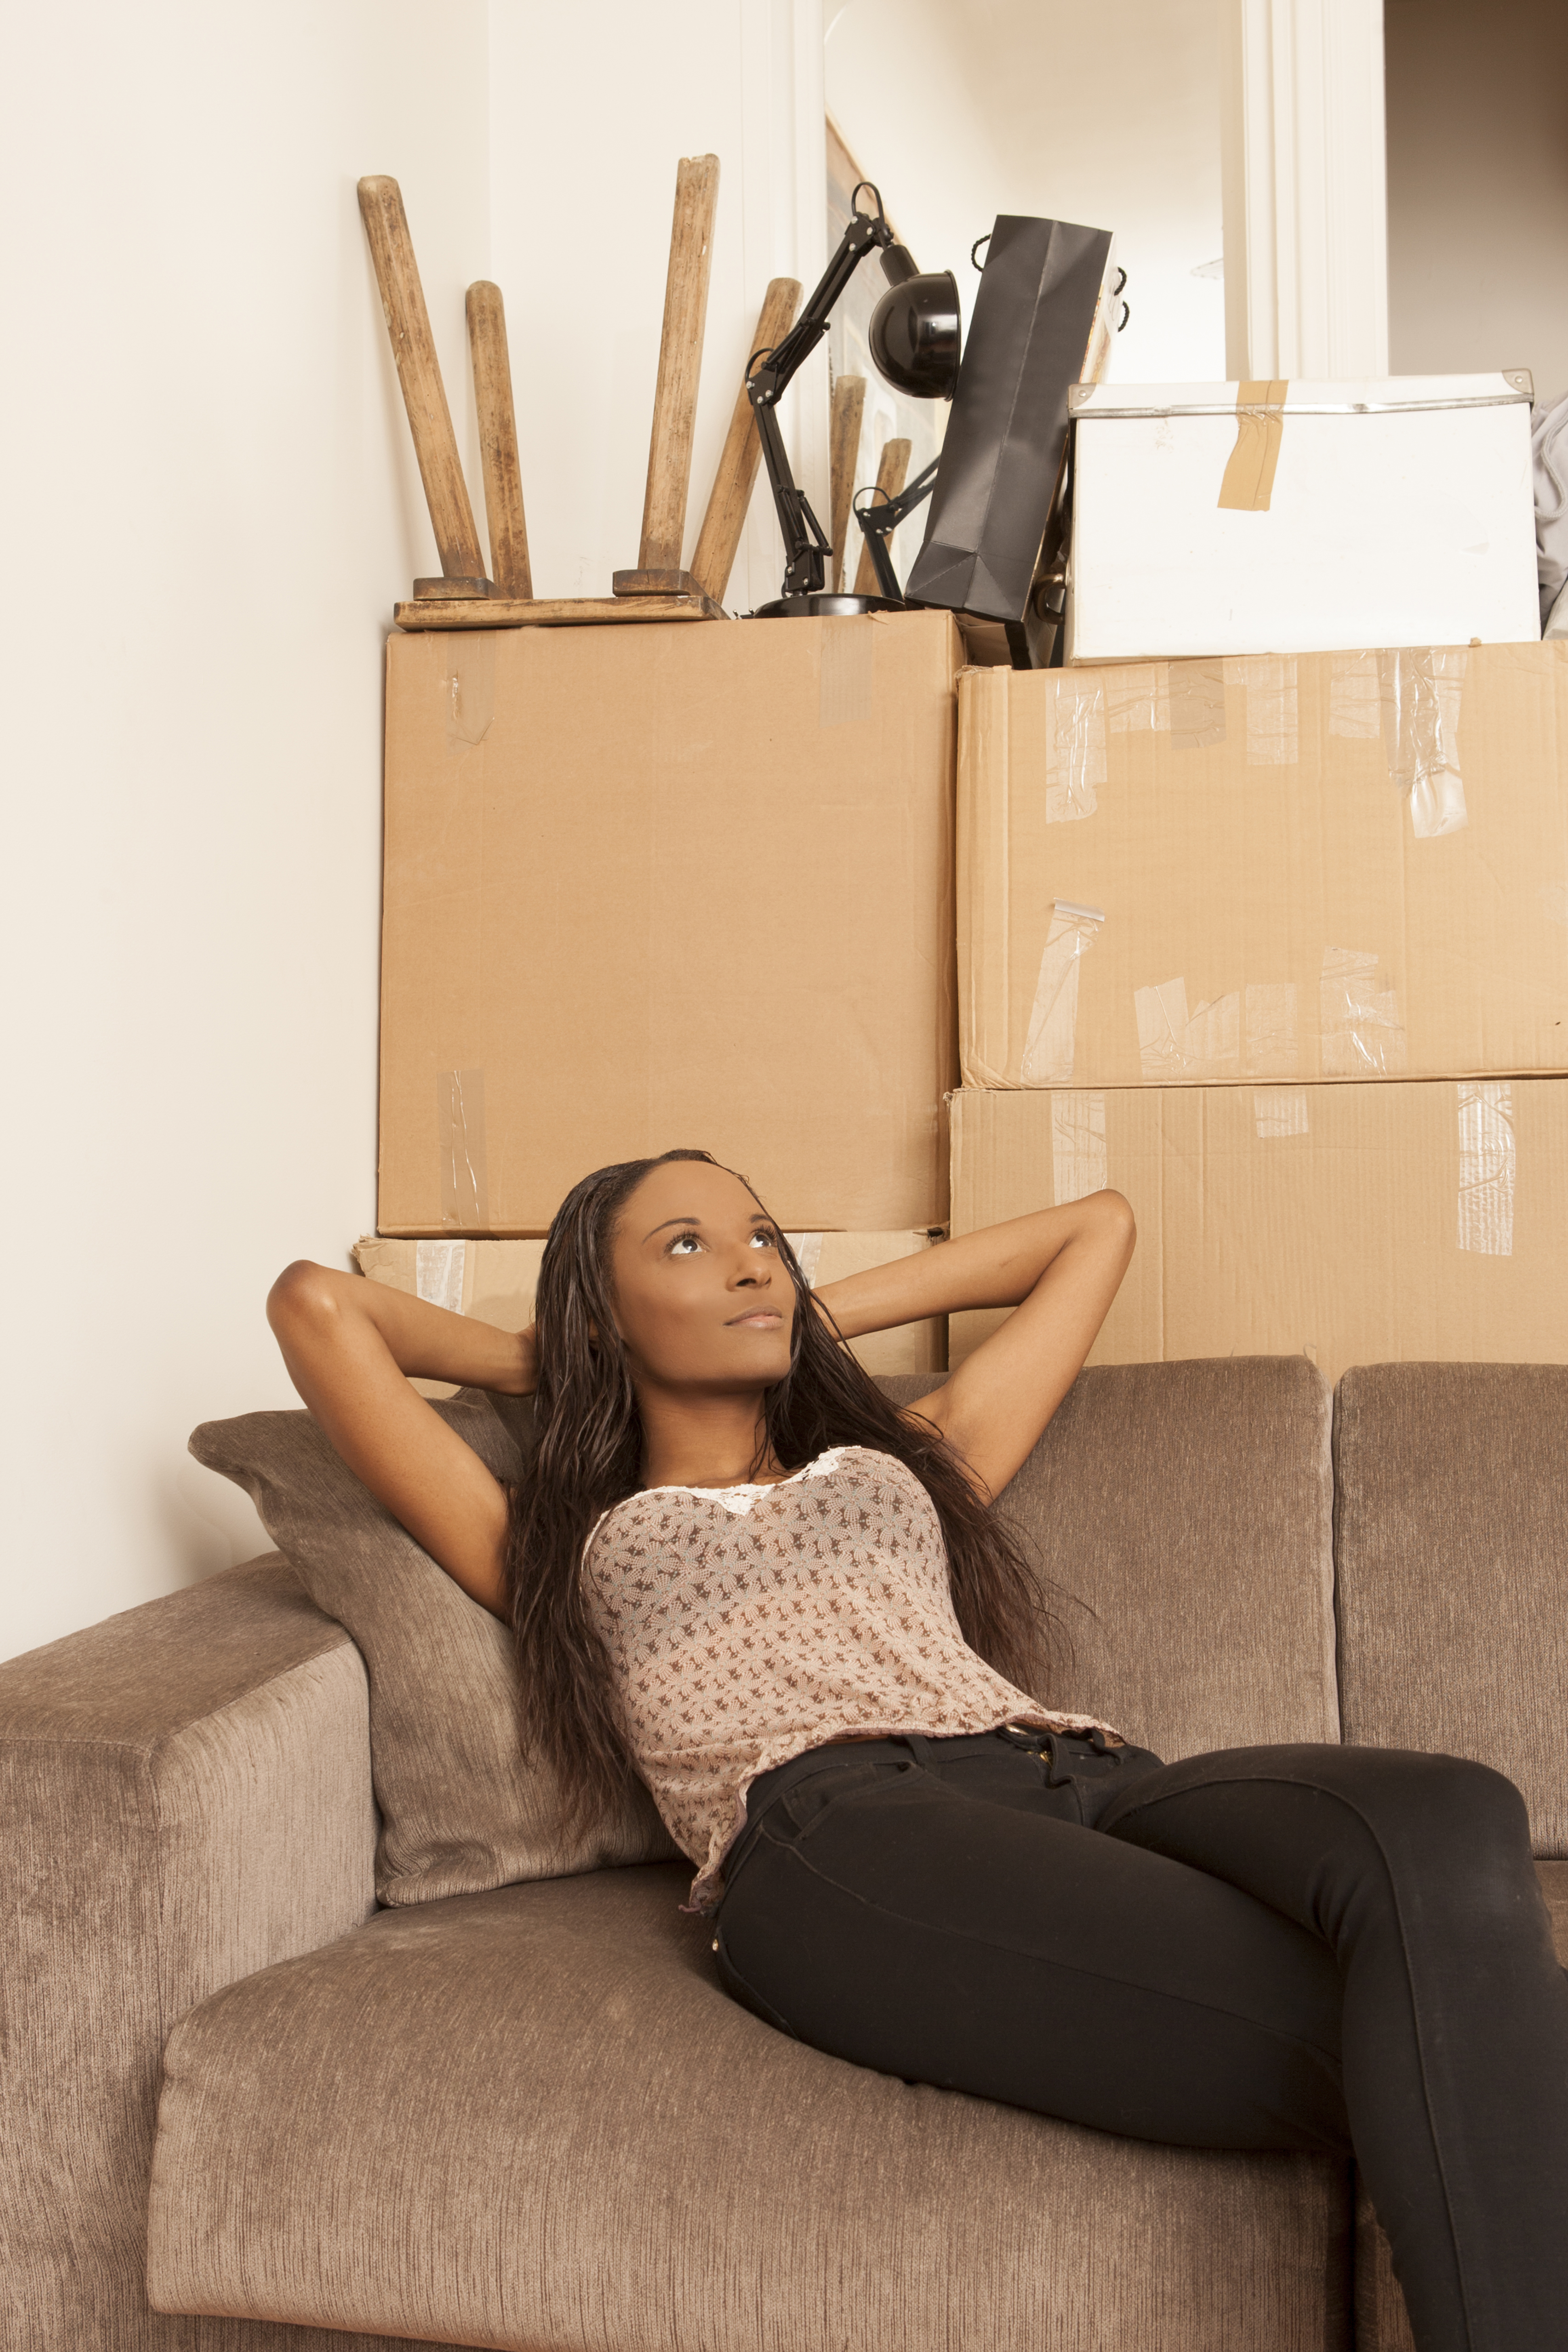 Woman sitting in flat surrounded by boxes